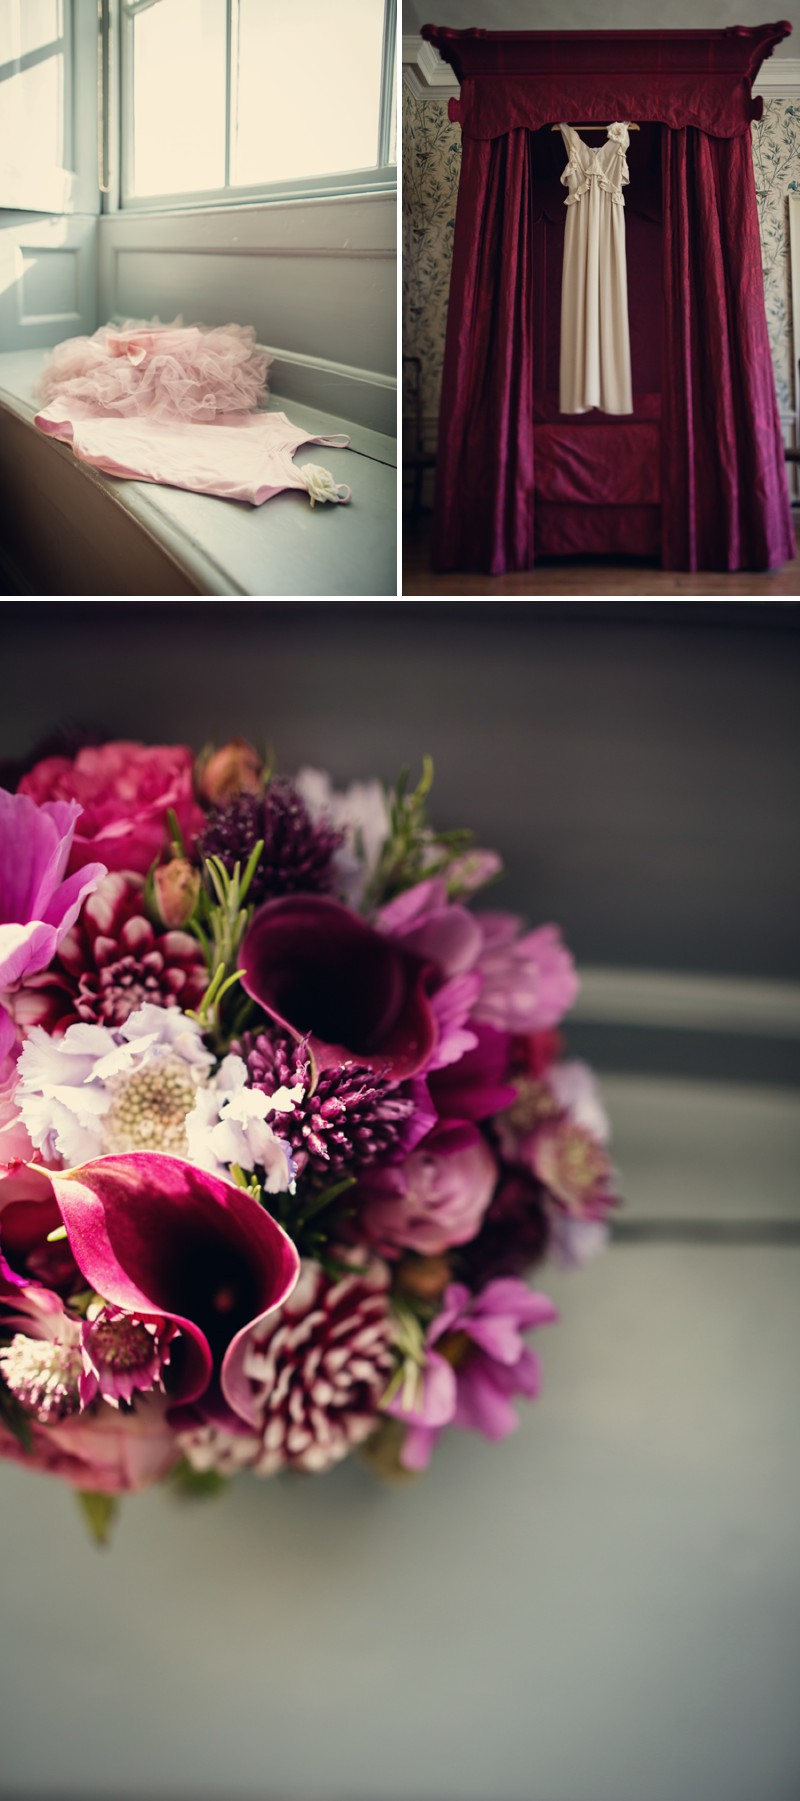 An Intimate And Contemporary Wedding At Valentines Mansion With A Vintage Chanel Wedding Dress And A Cool Water And Dahlia Bouquet By Assassynation Photography.